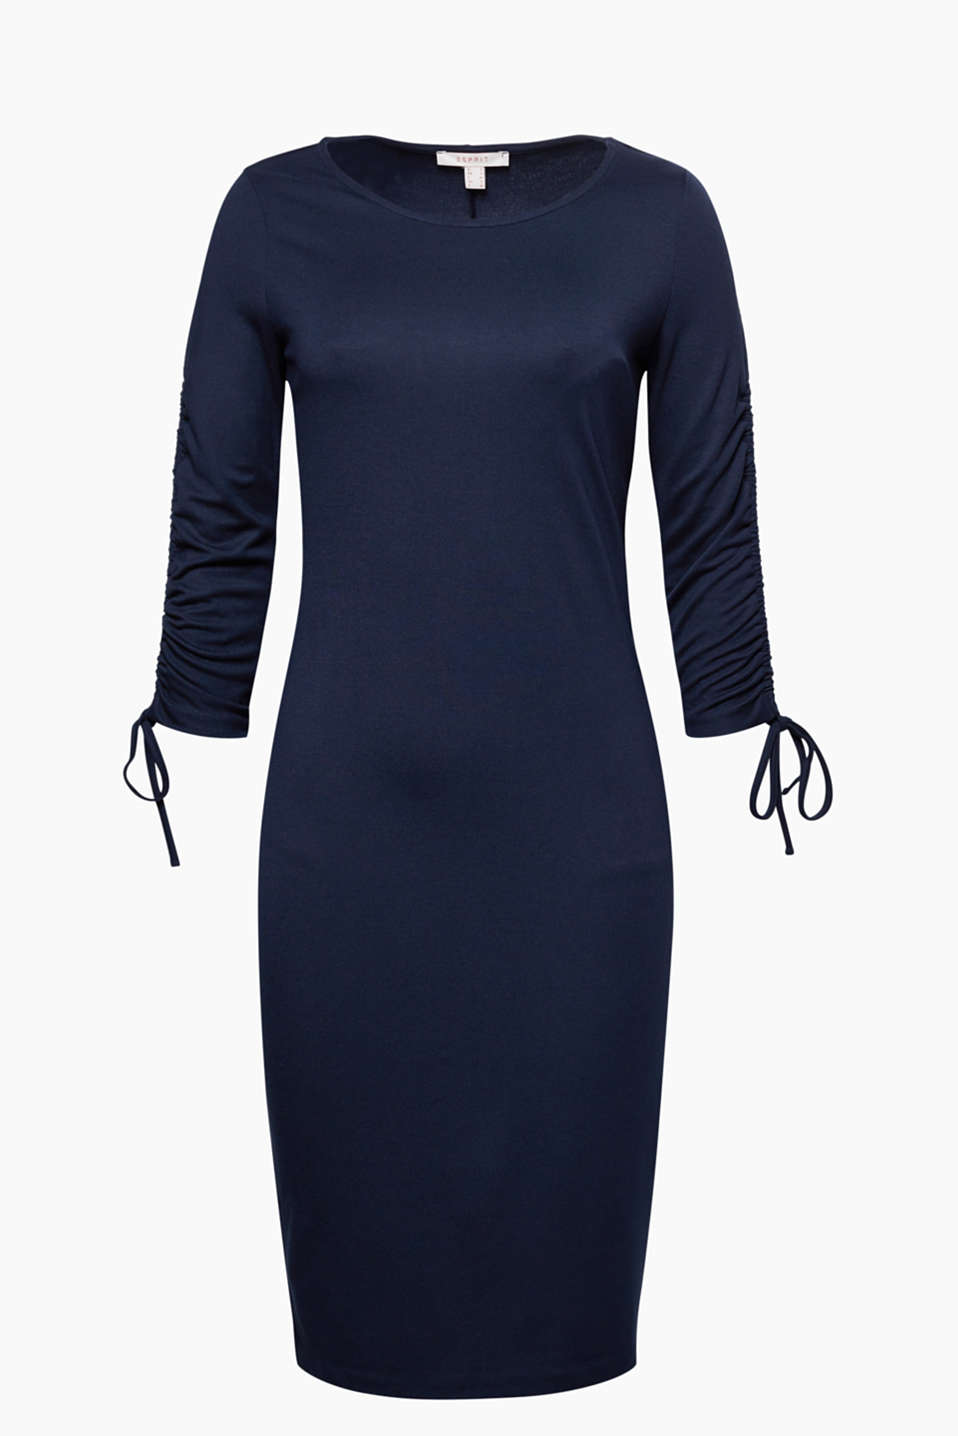 This feminine dress in dense stretch jersey with three-quarter length sleeves has feminine gathers